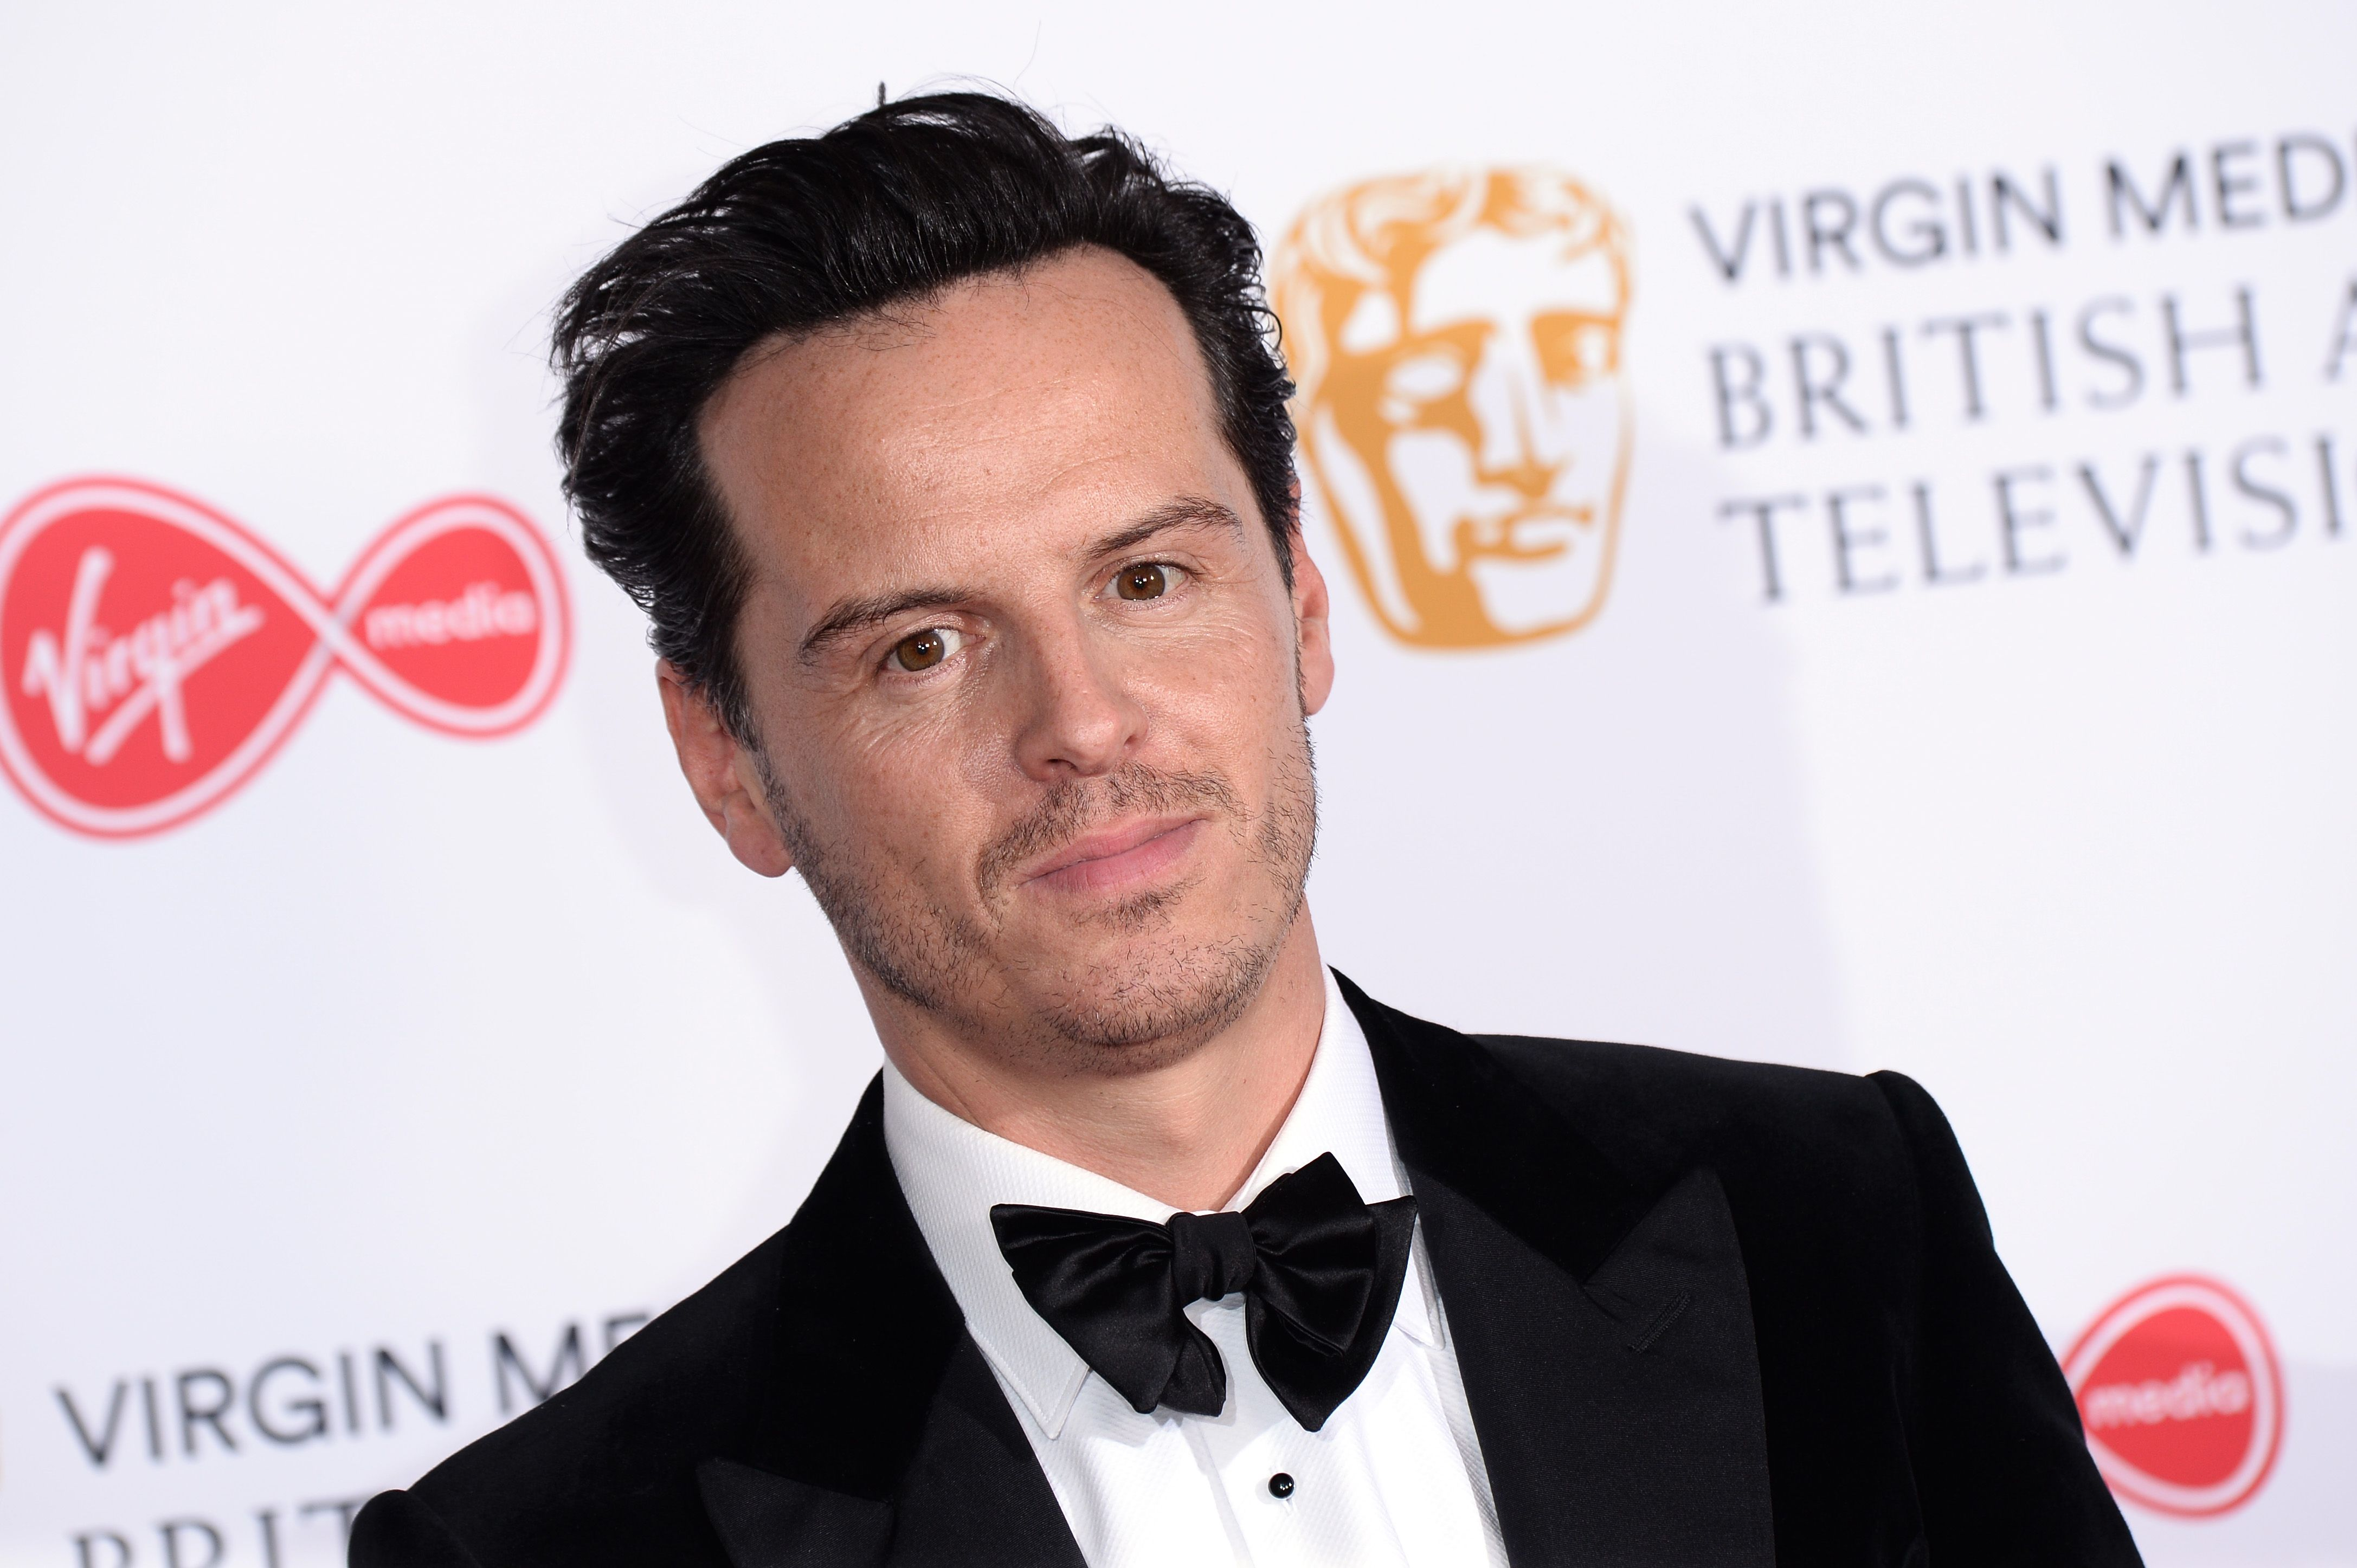 """Exclusive: Sherlock season 5 could see Moriarty return as Andrew Scott says the door is """"never fully closed"""""""